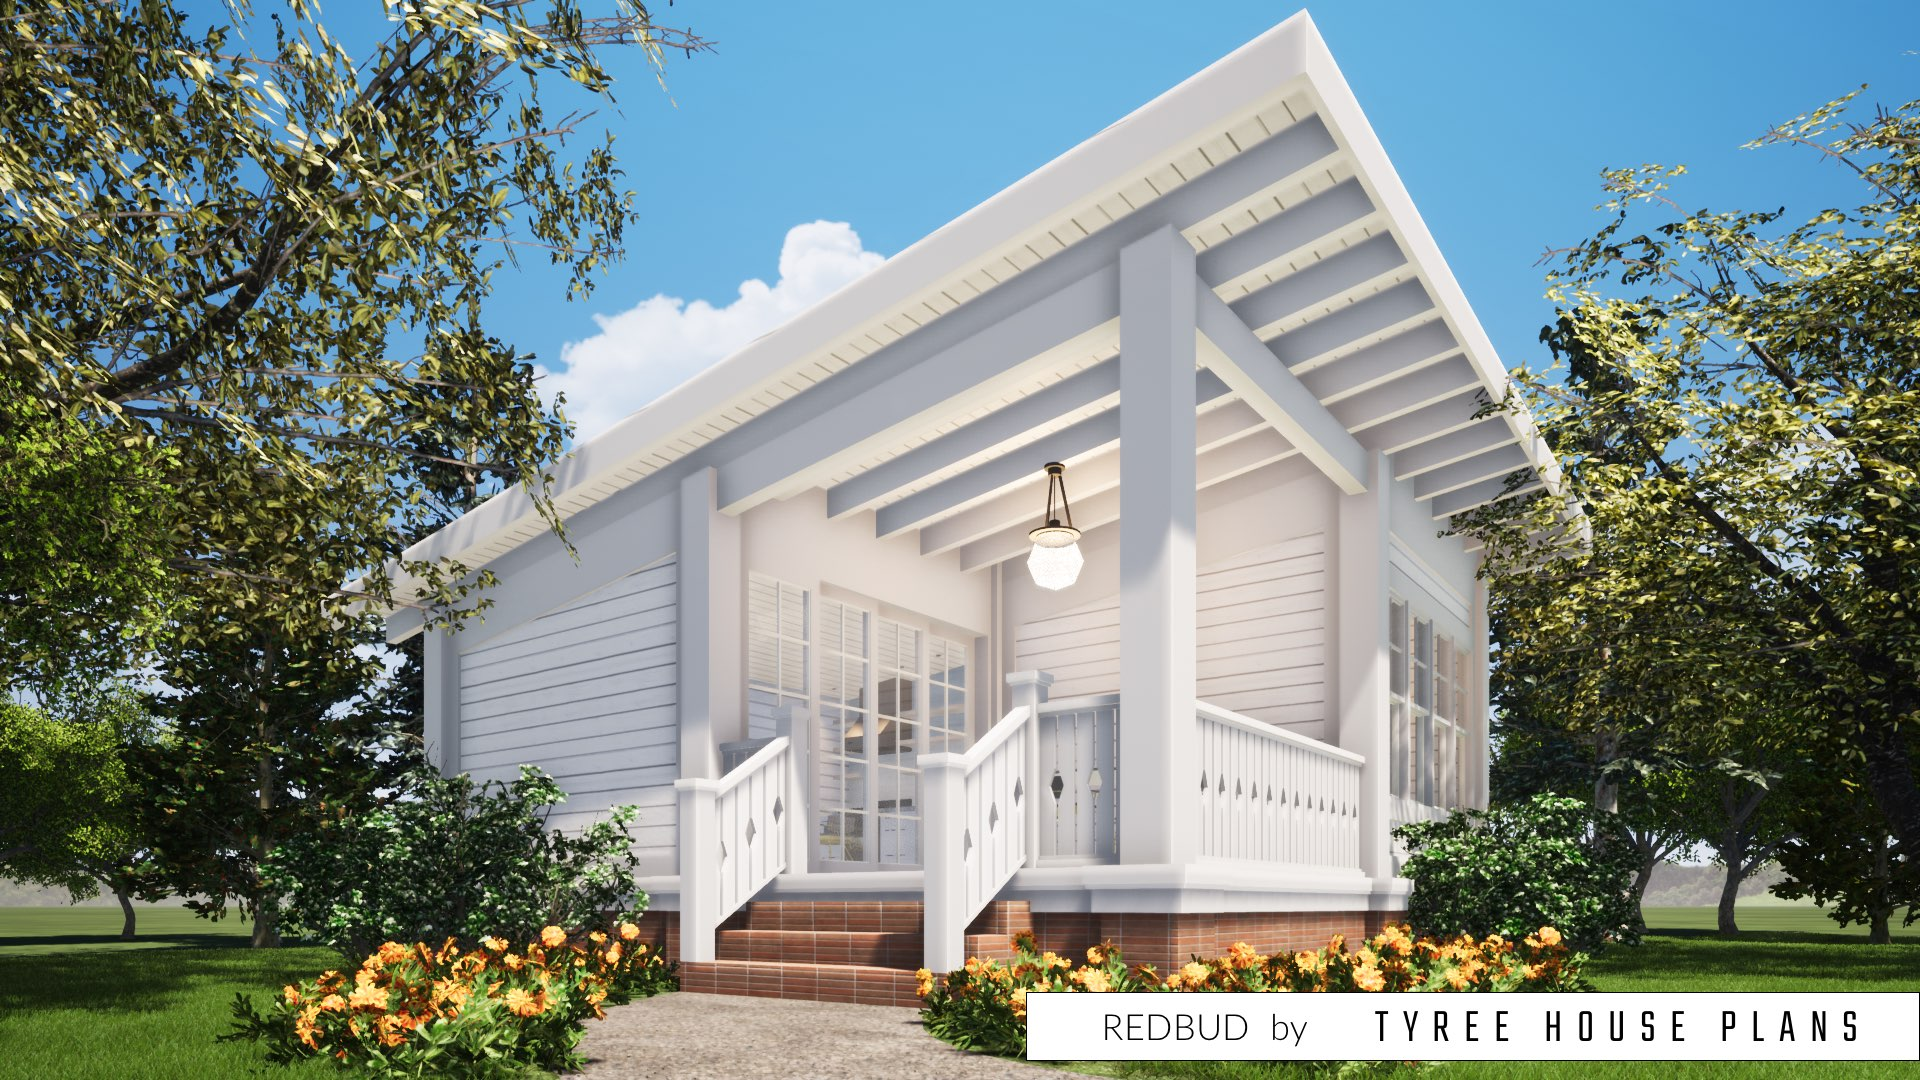 Front of House - Redbud House Plan by Tyree House Plans